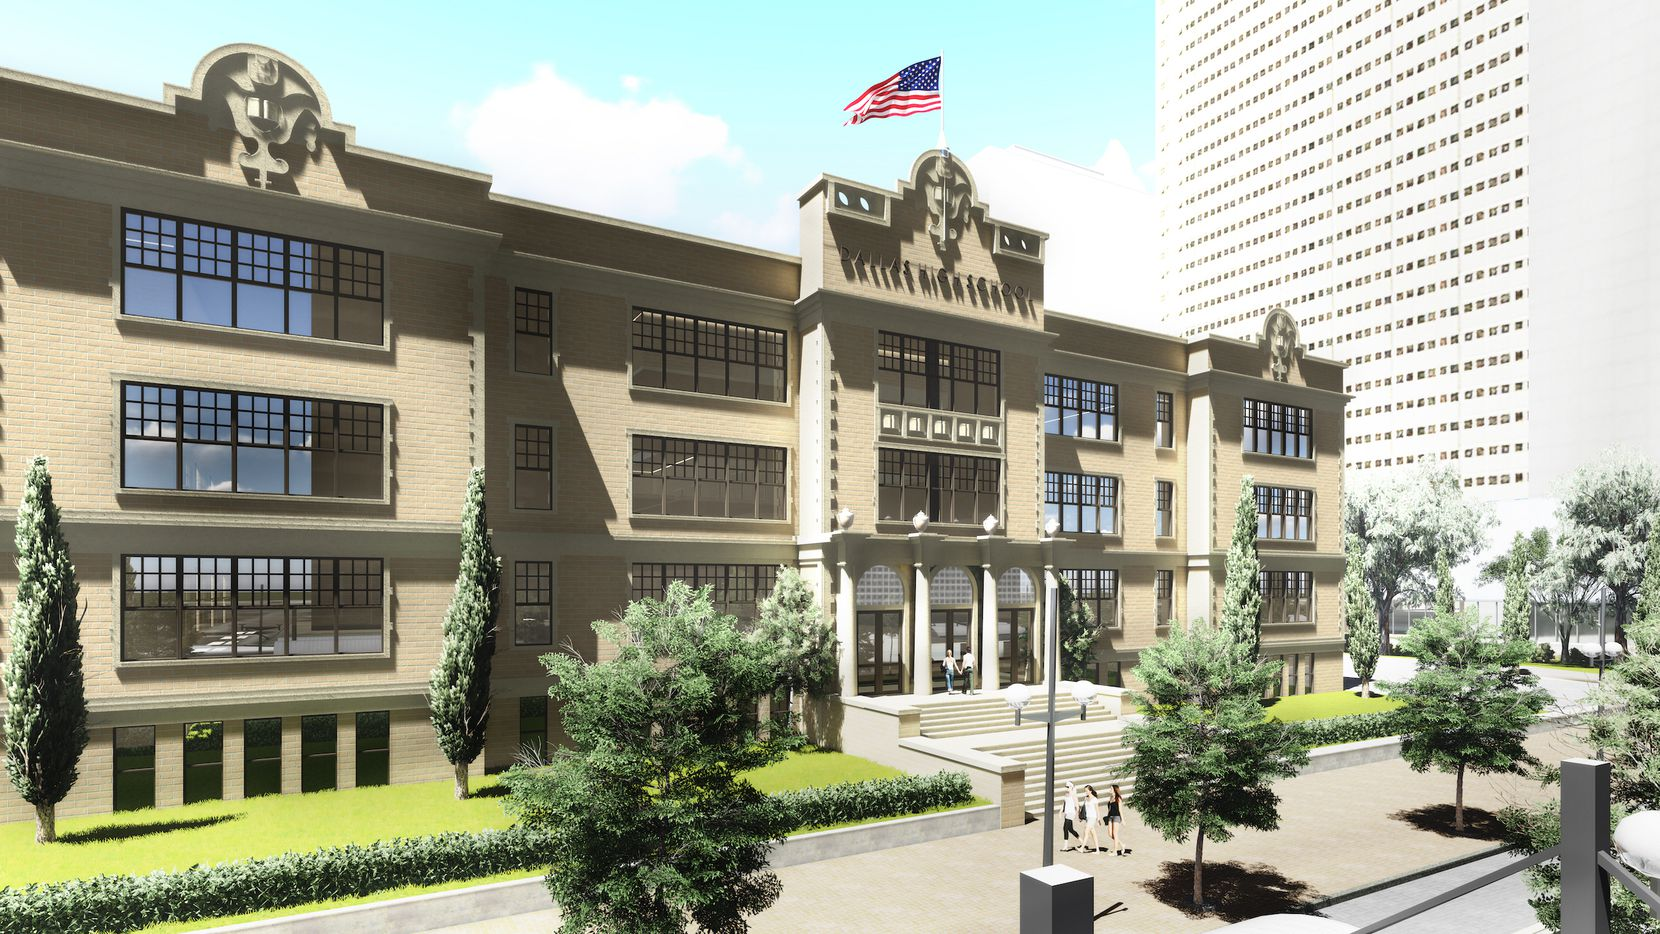 The planned rental community would be constructed east of the historic school building on Bryan Street.